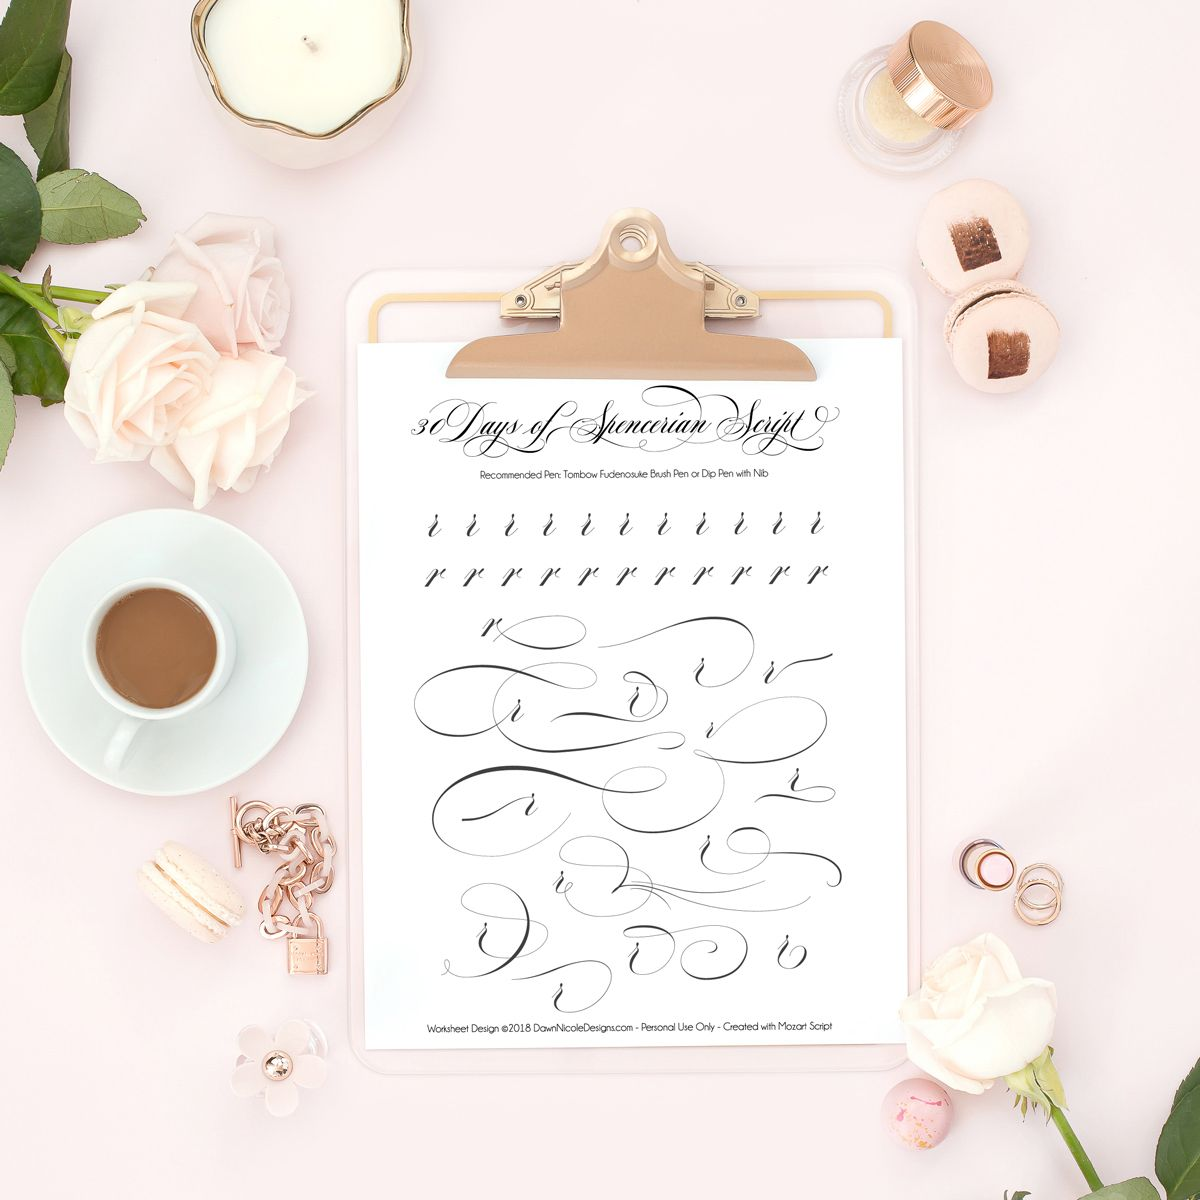 Spencerian Script Style Letter R Worksheets By Dawn